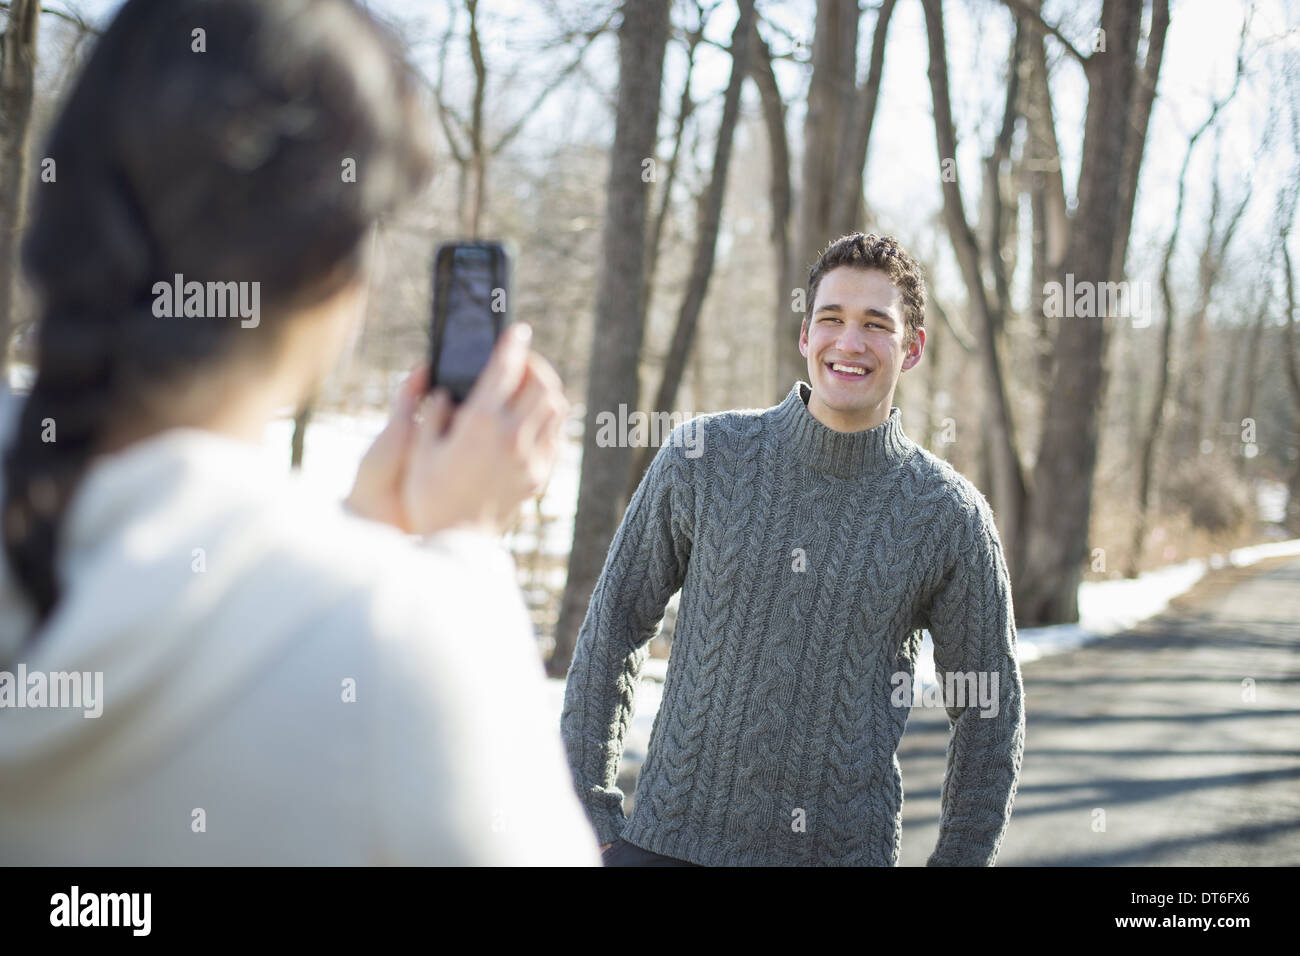 A couple outdoors on a snowy day. A woman holding a camera phone, taking photographs of a man. - Stock Image